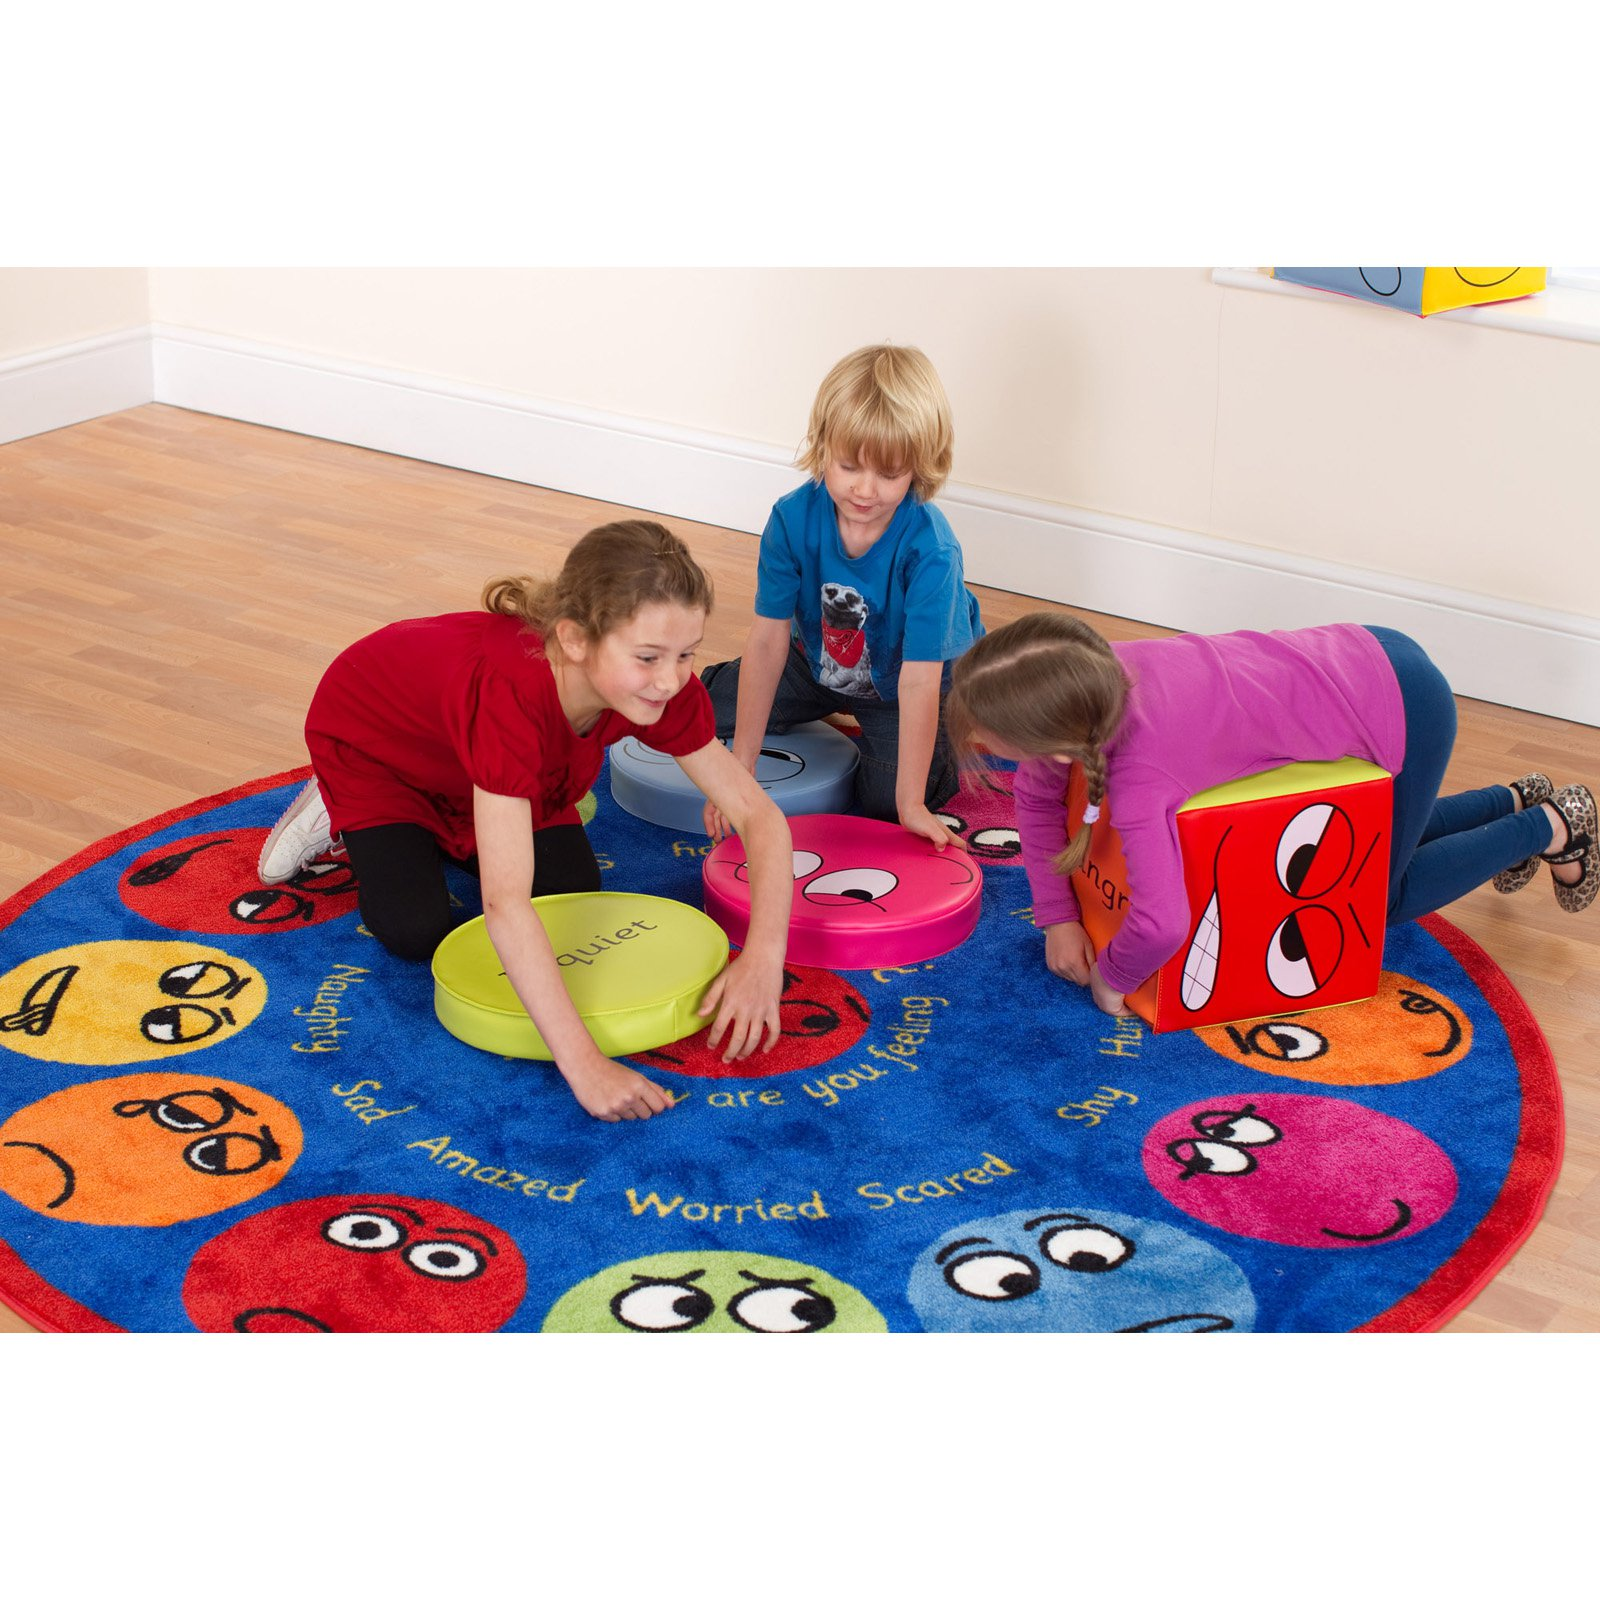 Kalokids Emotions Interactive Circular Carpet